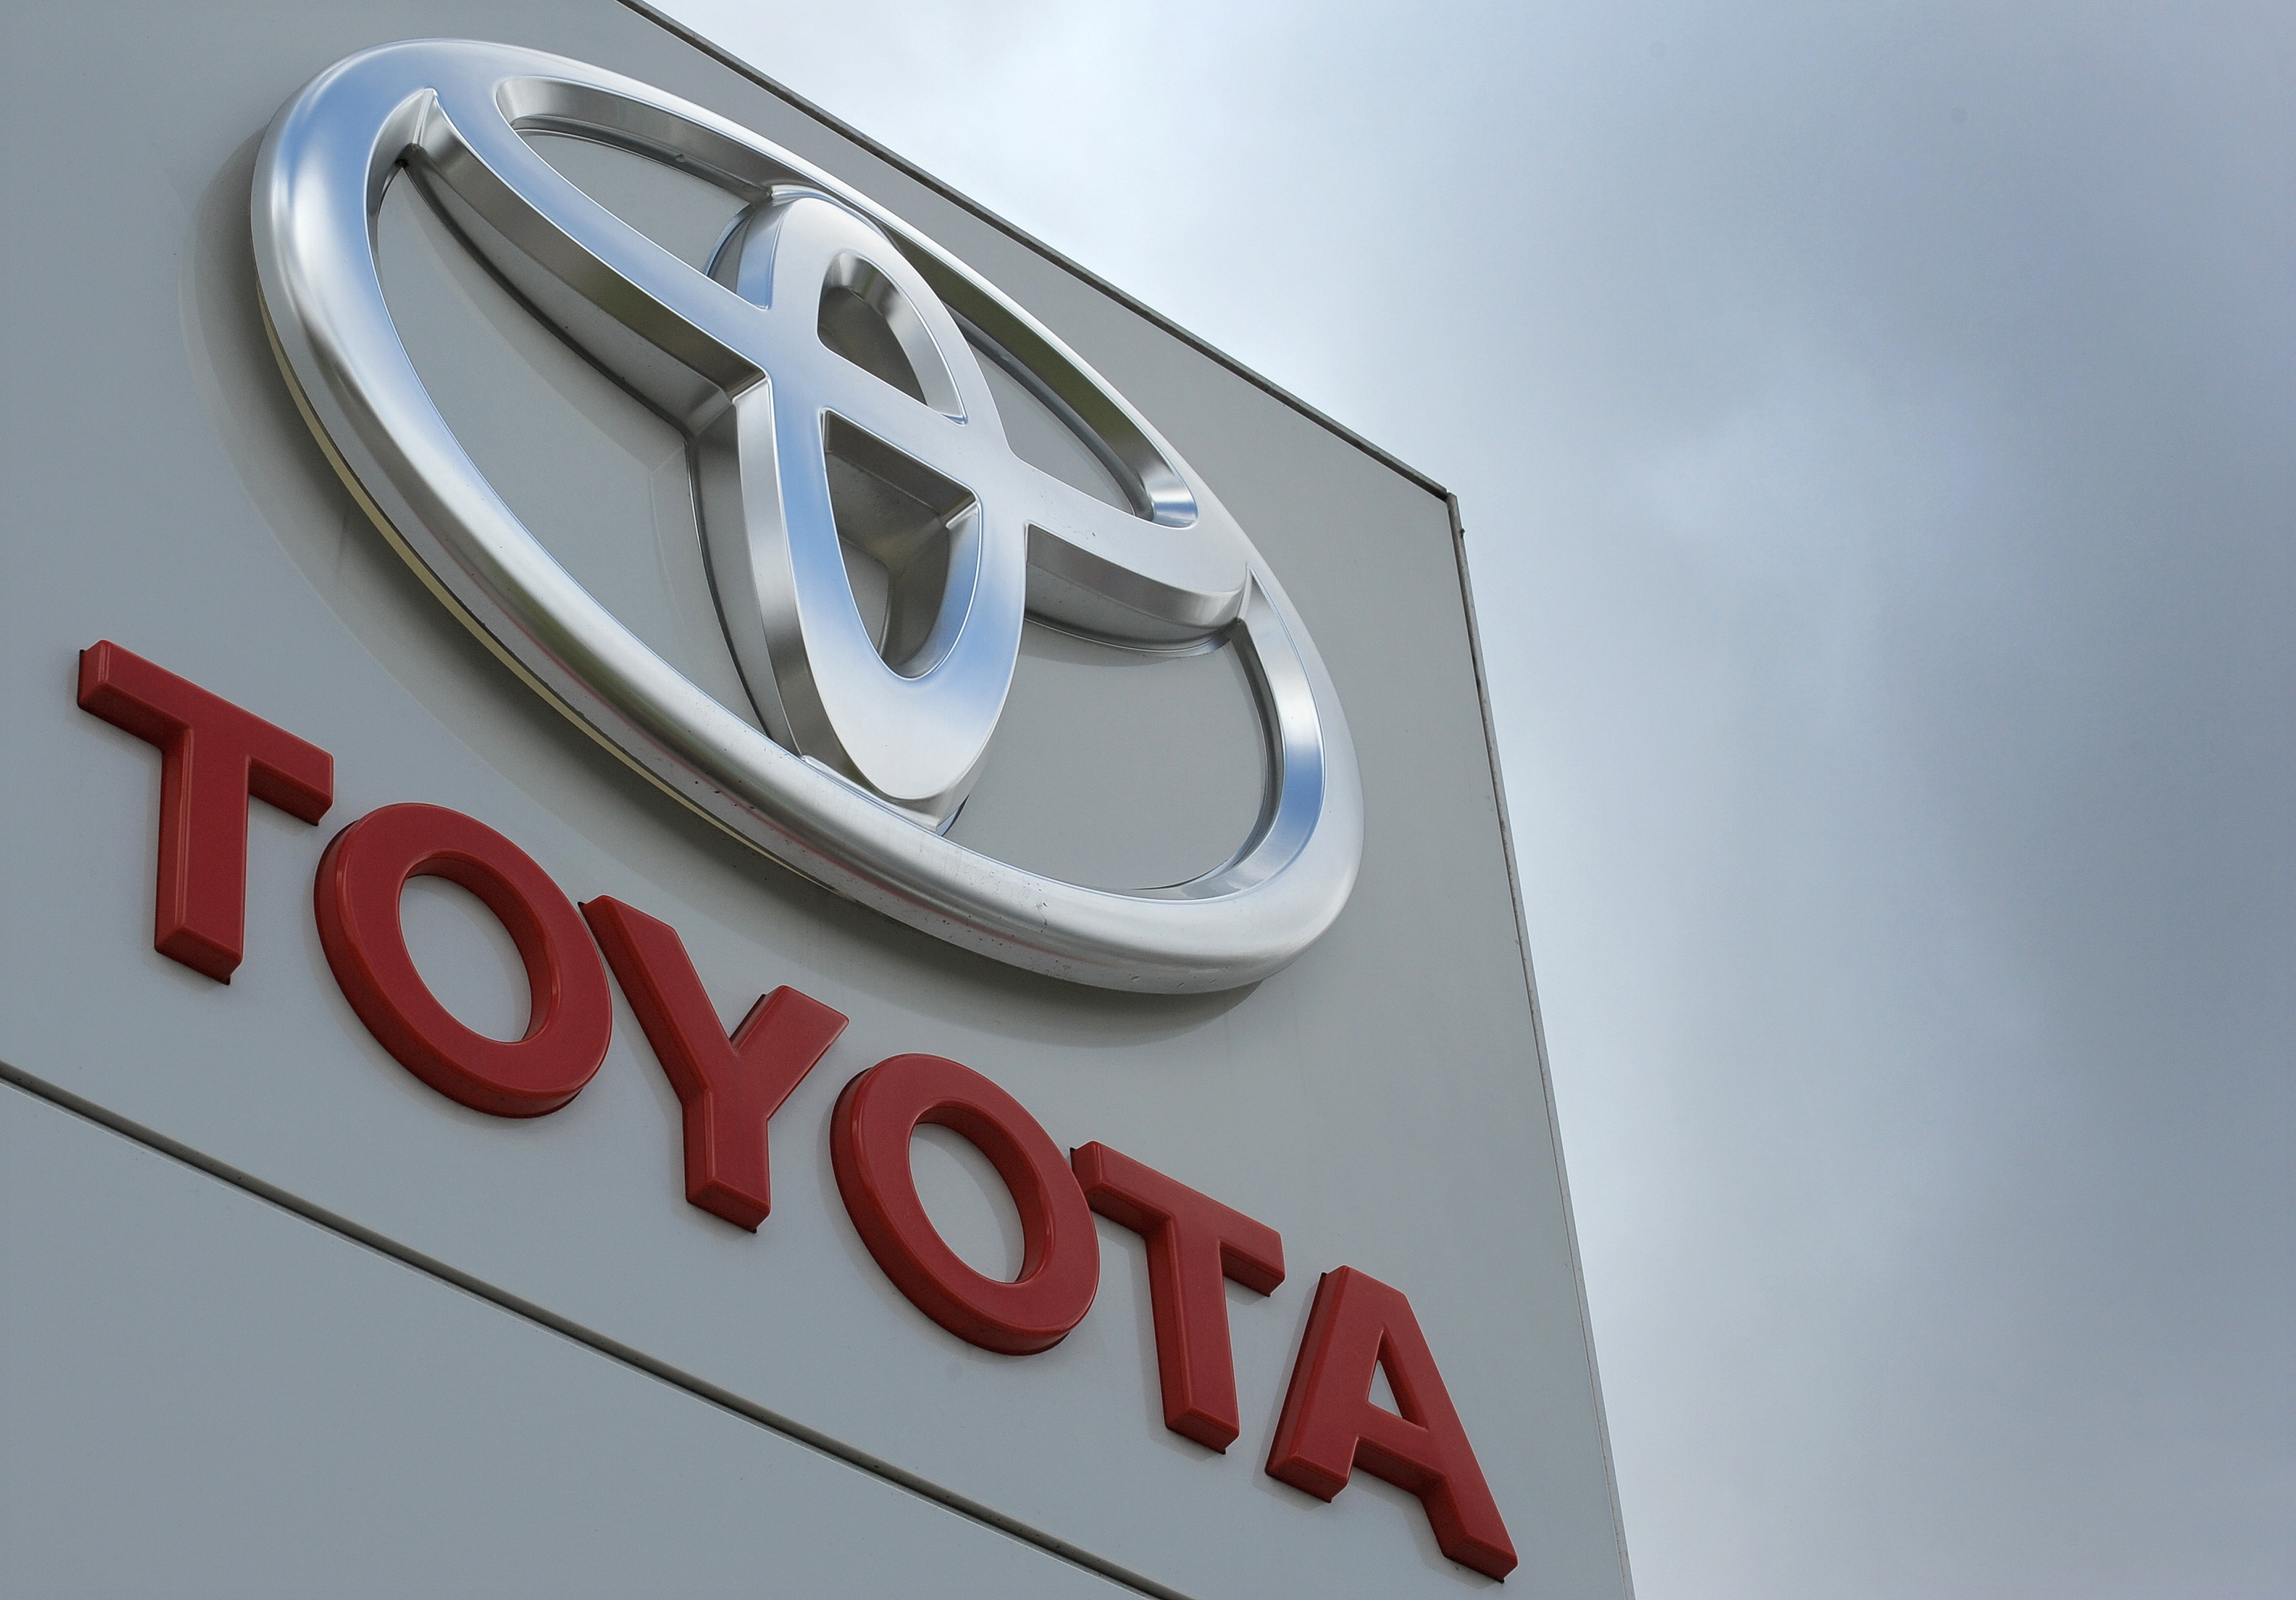 BRITAIN-JAPAN-FRANCE-AUTO-COMPANY-TOYOTA